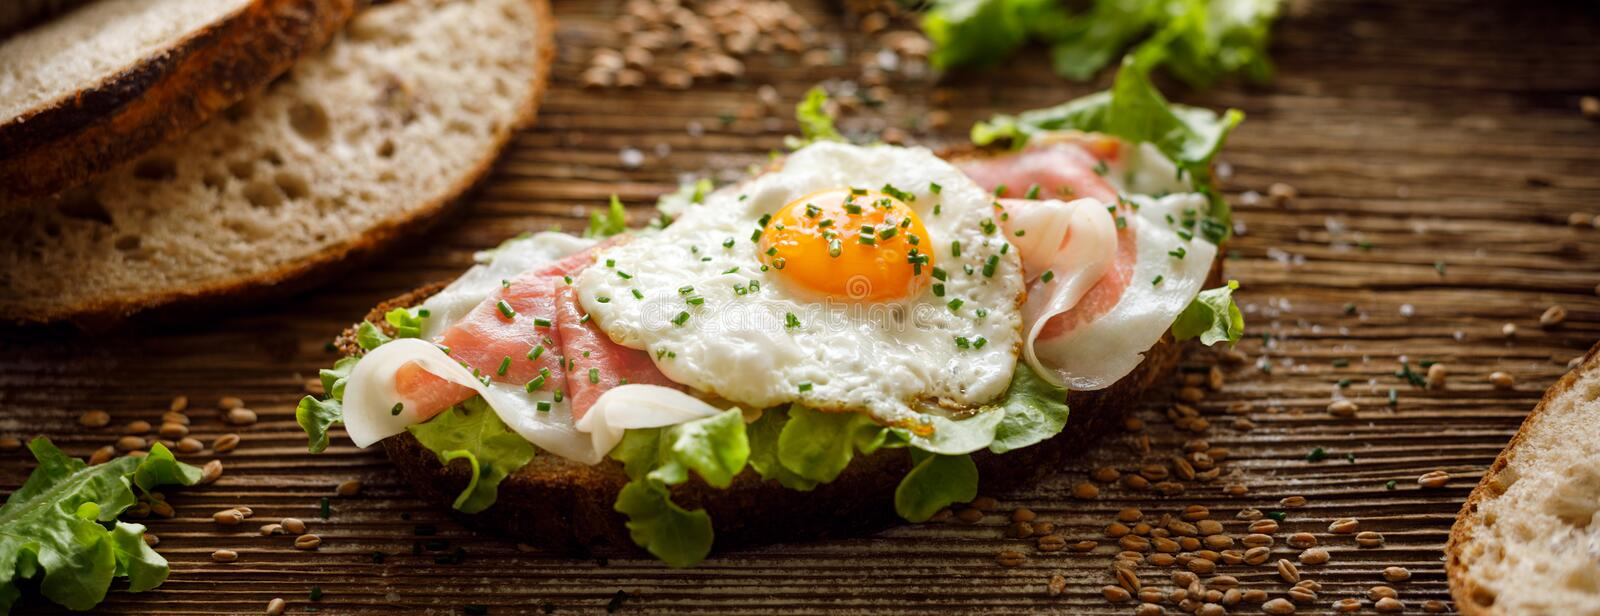 Ham and fried egg open sandwich, Sourdough bread sandwich with lettuce, ham and fried egg on a rustic wooden table royalty free stock photography